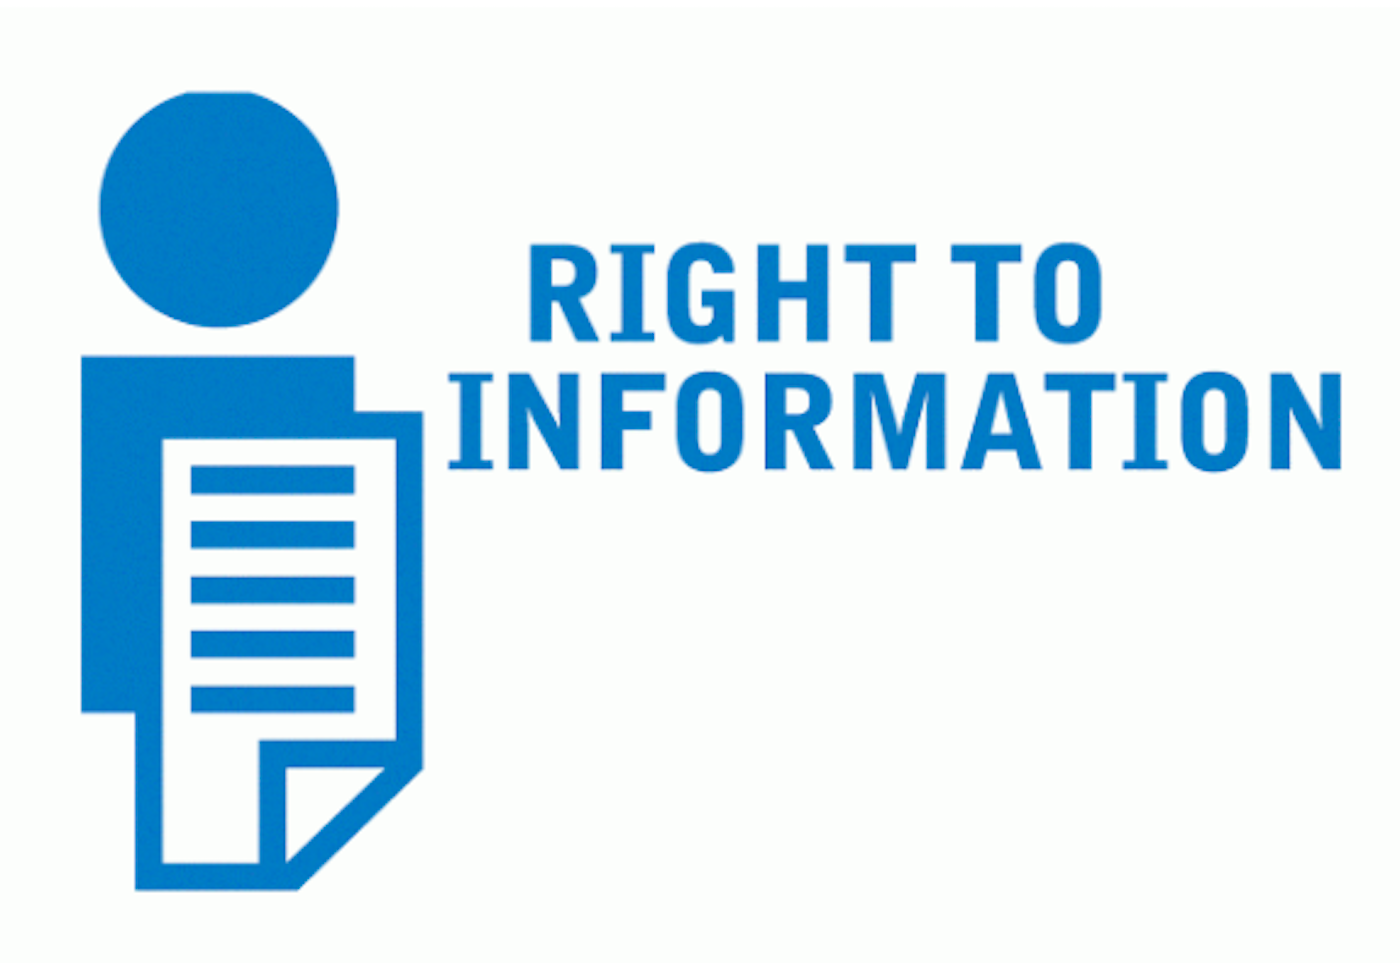 Explained - What is RTI & RTI Act, 2005 & RTI Amendment Bill 2019